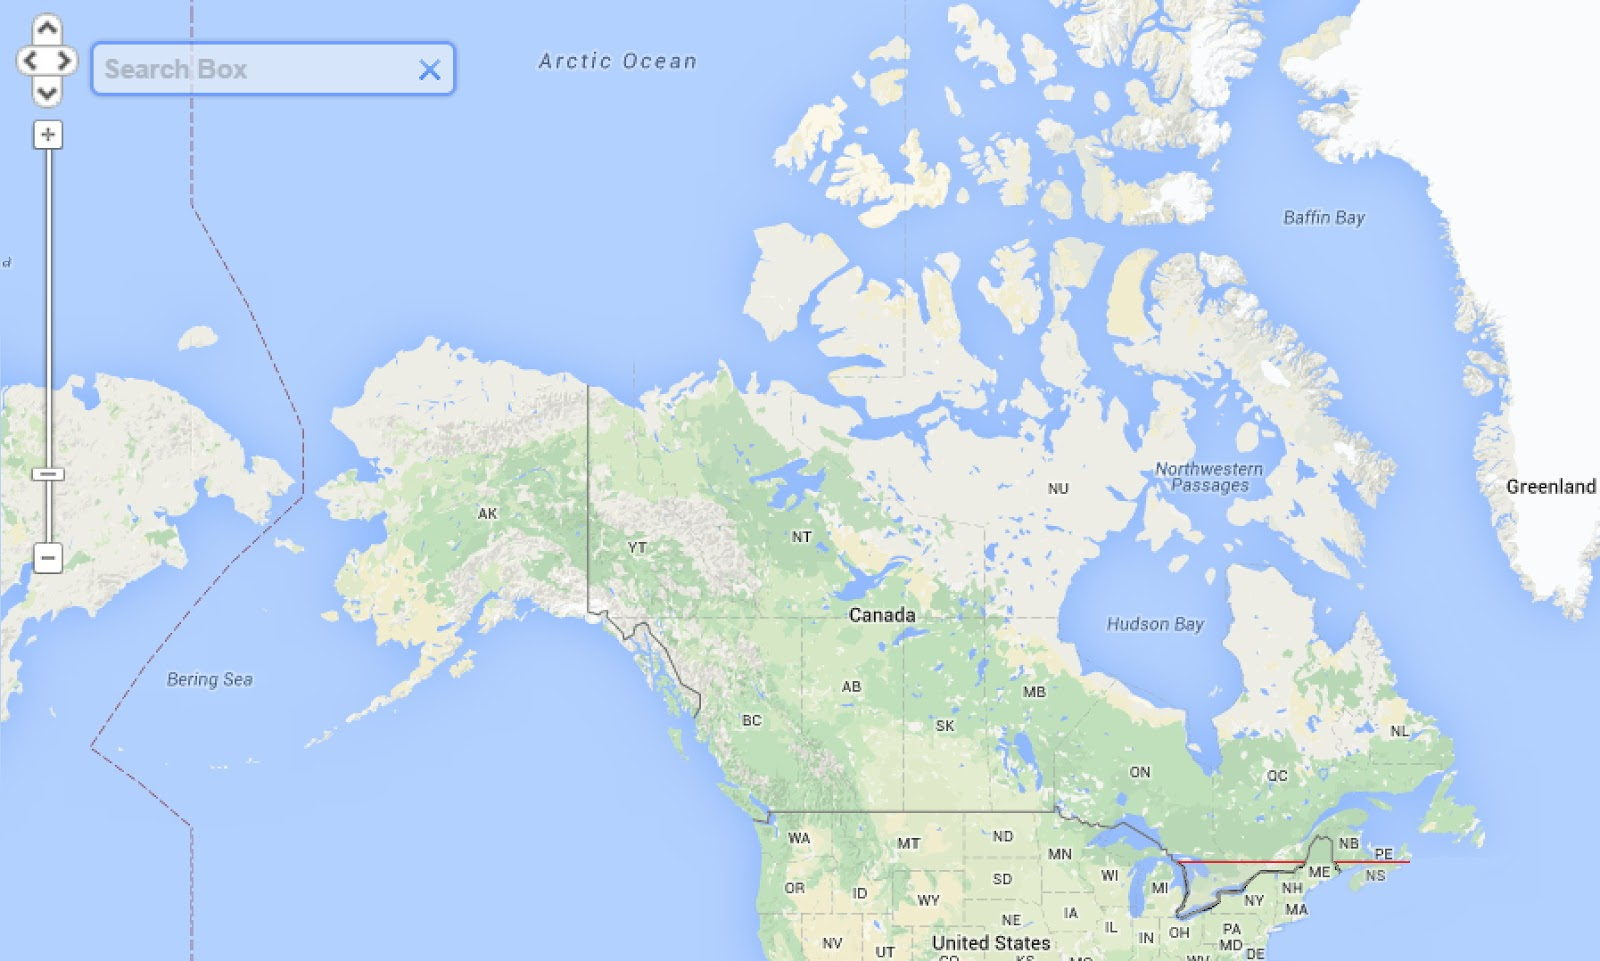 Half of Canada (33.5 million people) lives south of the red line, or 45.7 degrees north